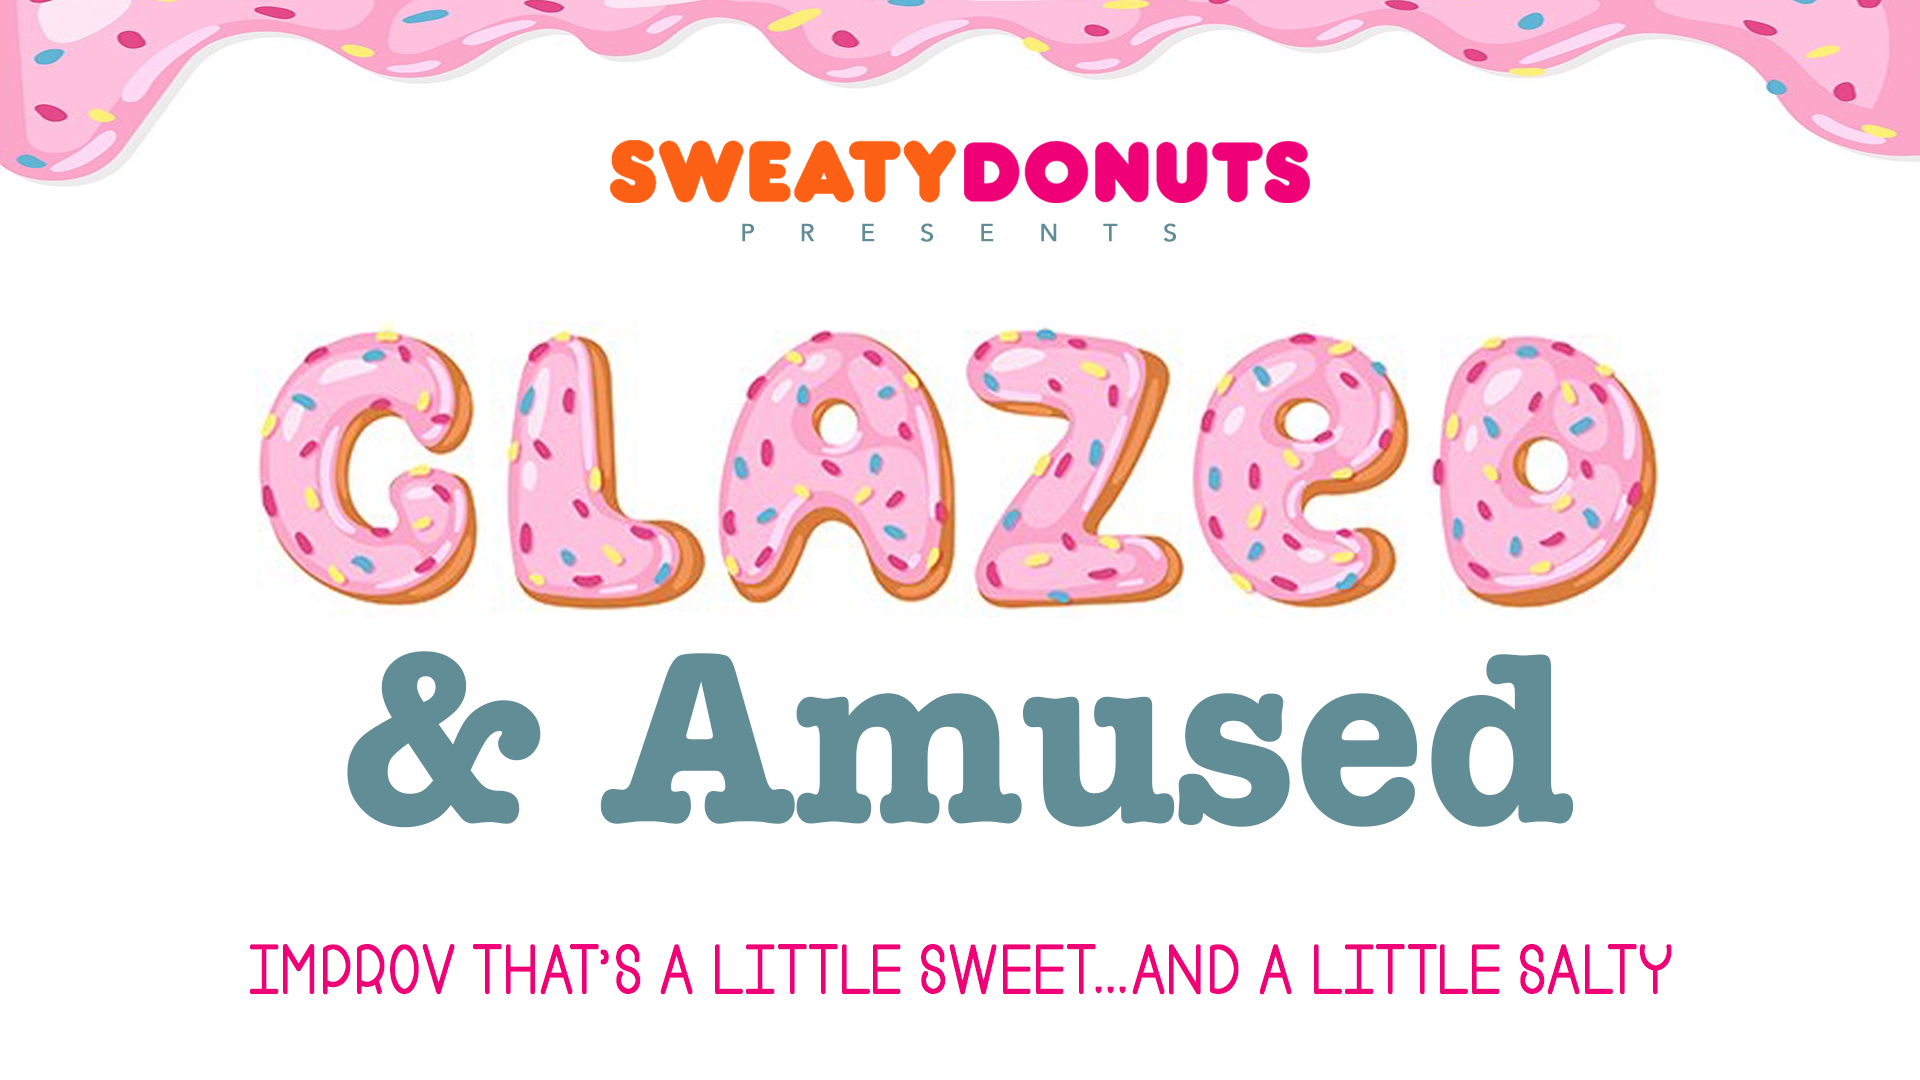 Glazed & Amused